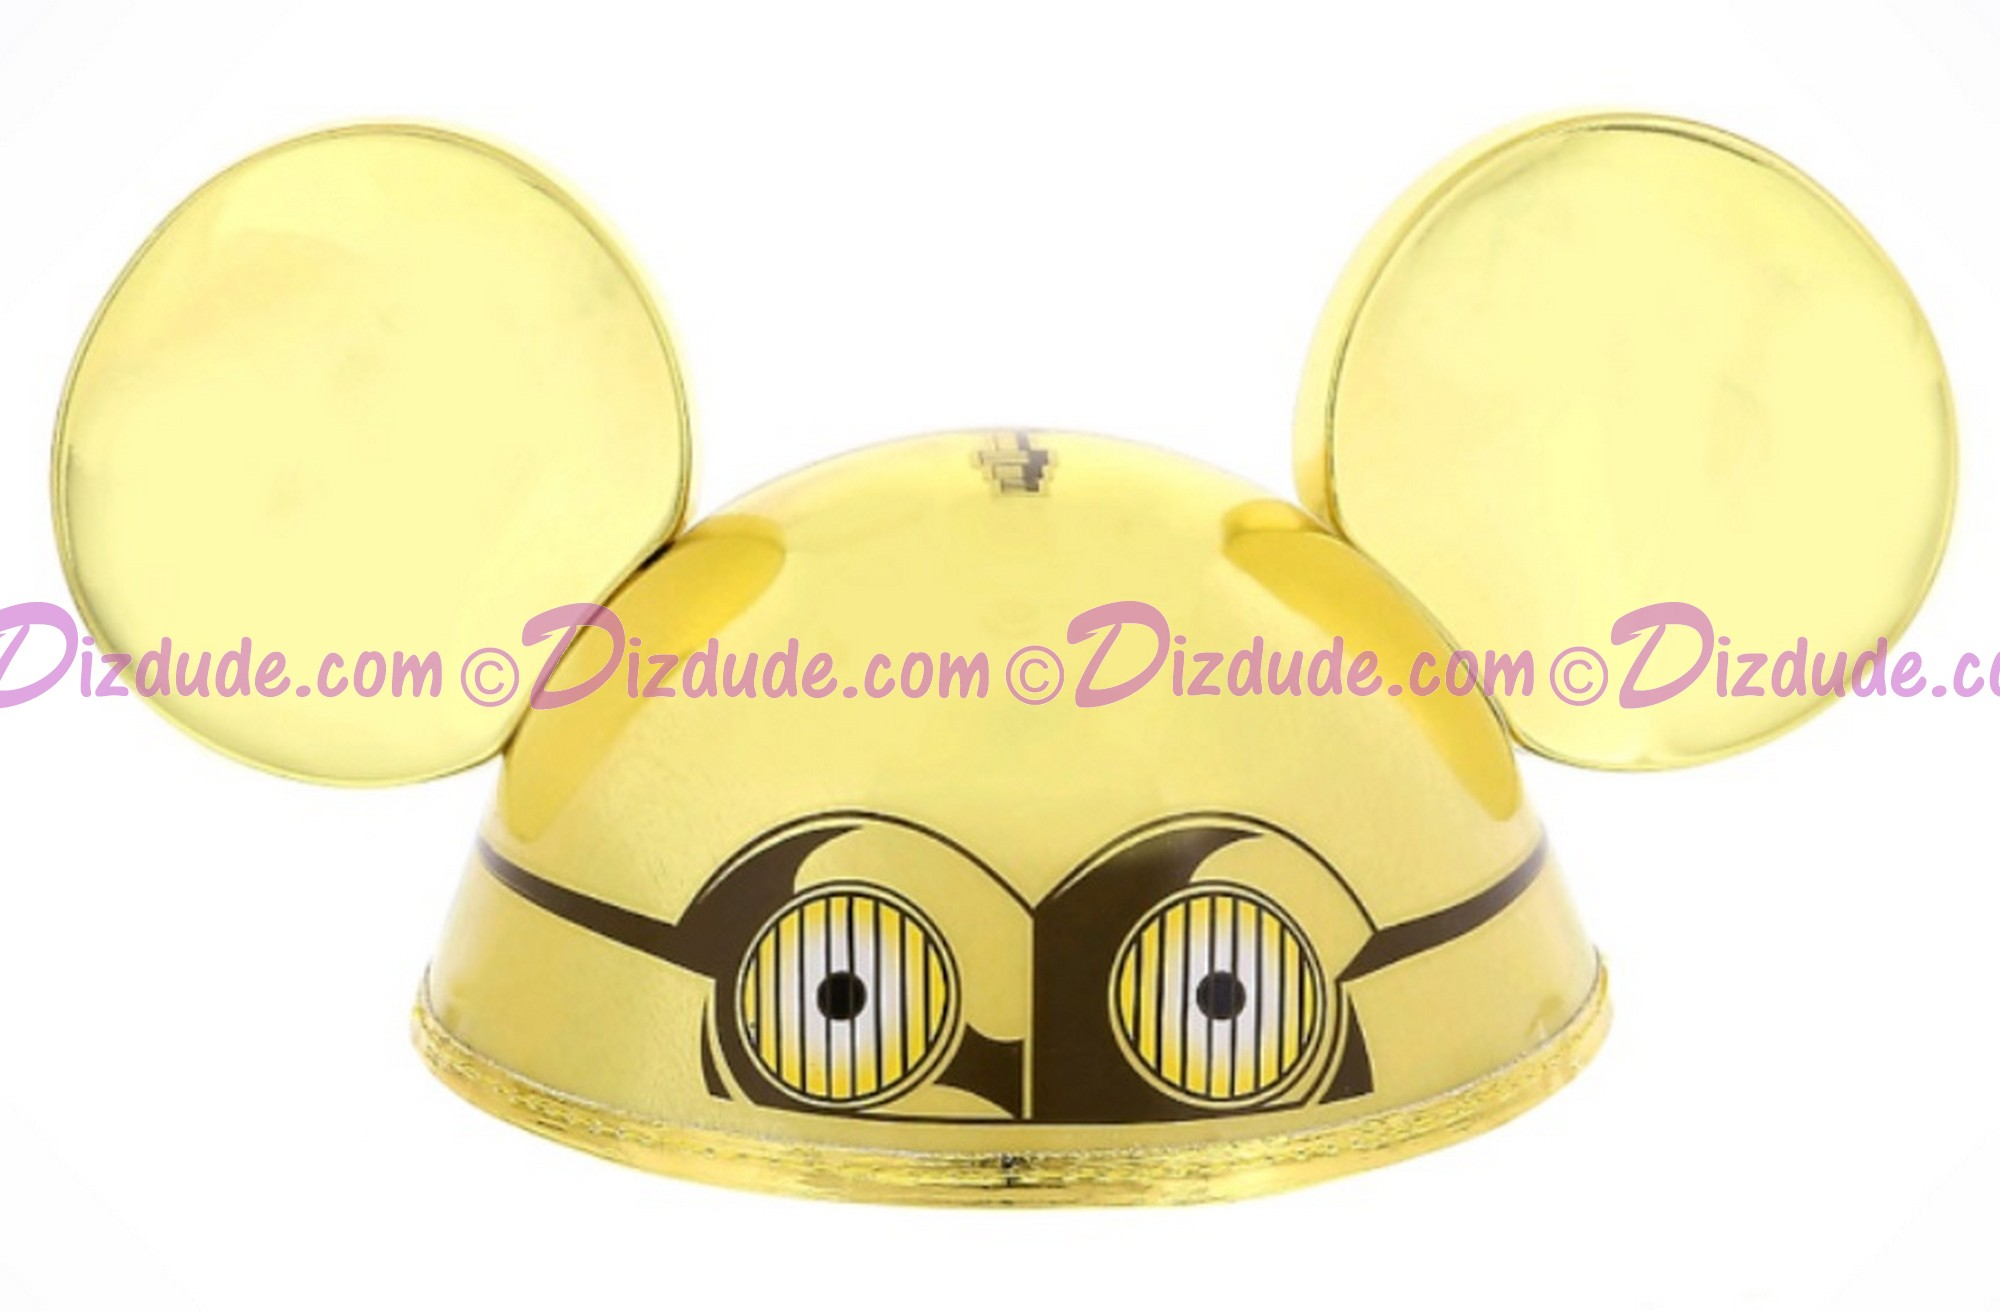 Disney Star Wars C-3PO Ear Hat © Dizdude.com